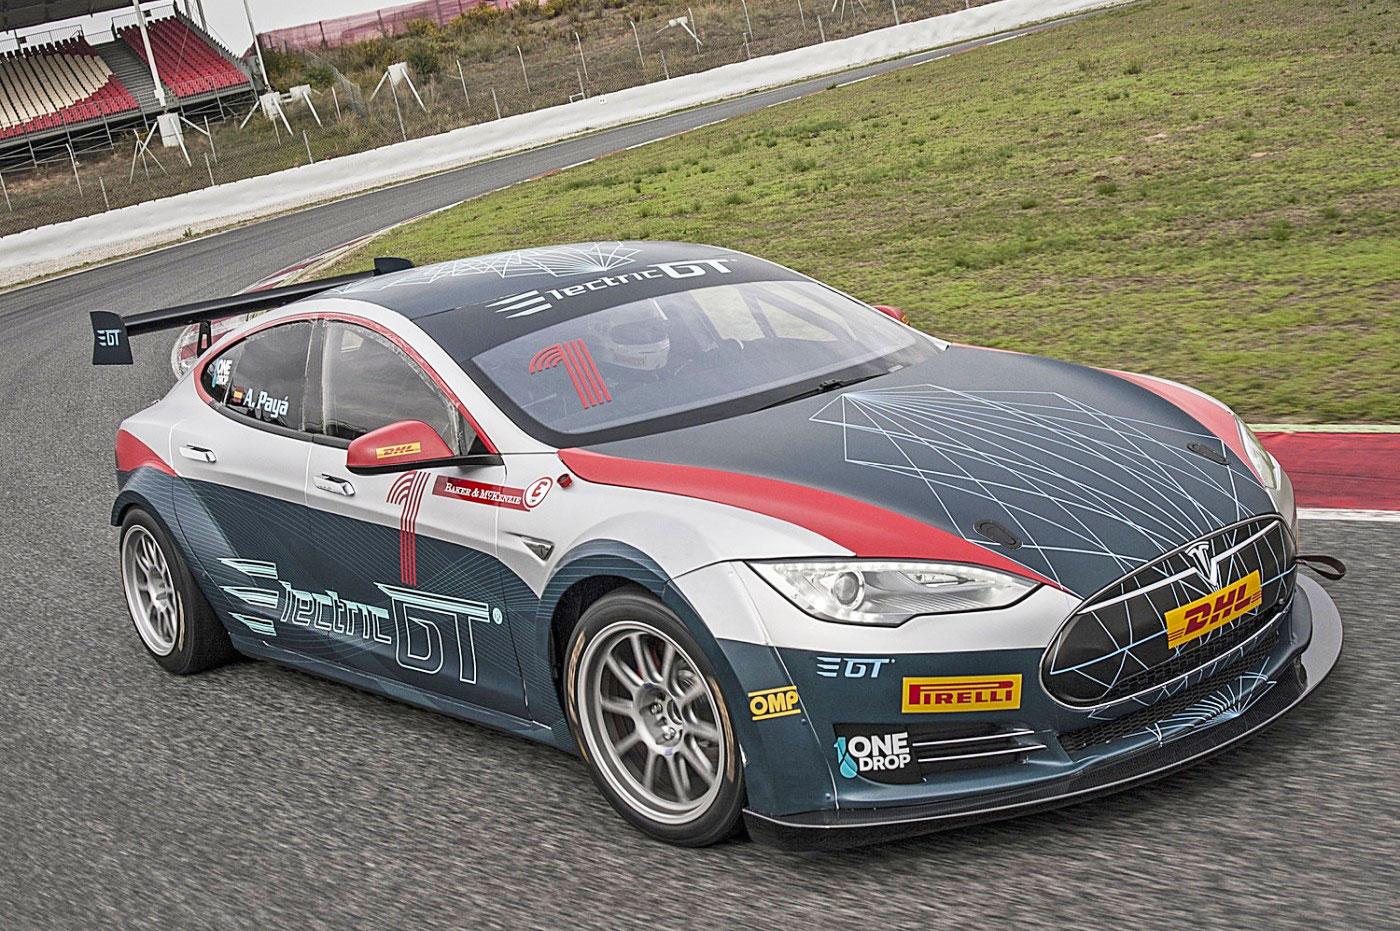 electric gt 39 s first race spec tesla model s hits the track. Black Bedroom Furniture Sets. Home Design Ideas